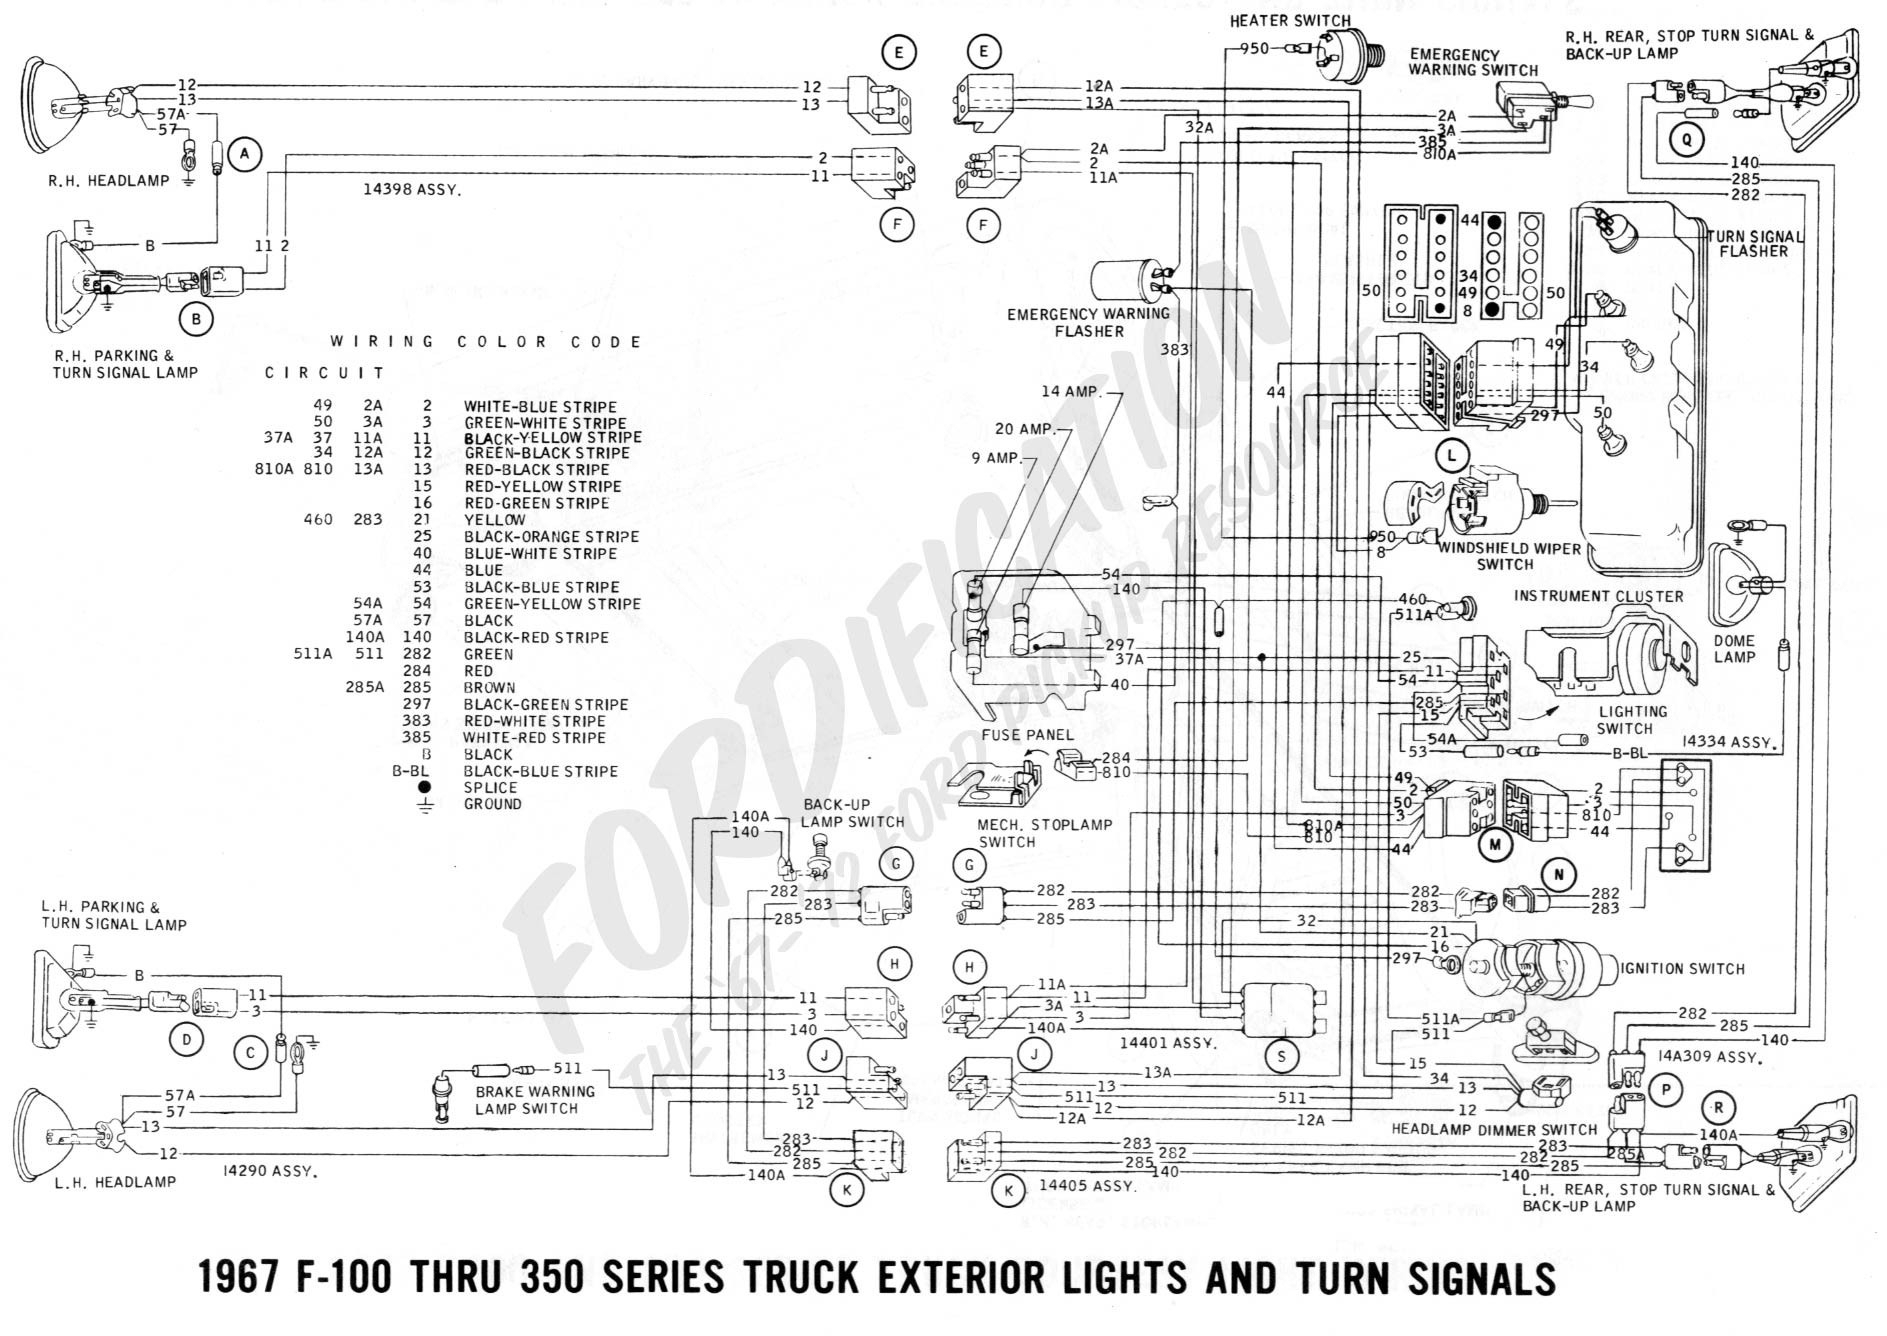 turn signal wiring diagram chevy truck Download-Turn Signal Wiring Diagram Chevy Truck Turn Signal Wiring Diagram Chevy Truck 1973 1979 ford 20-h